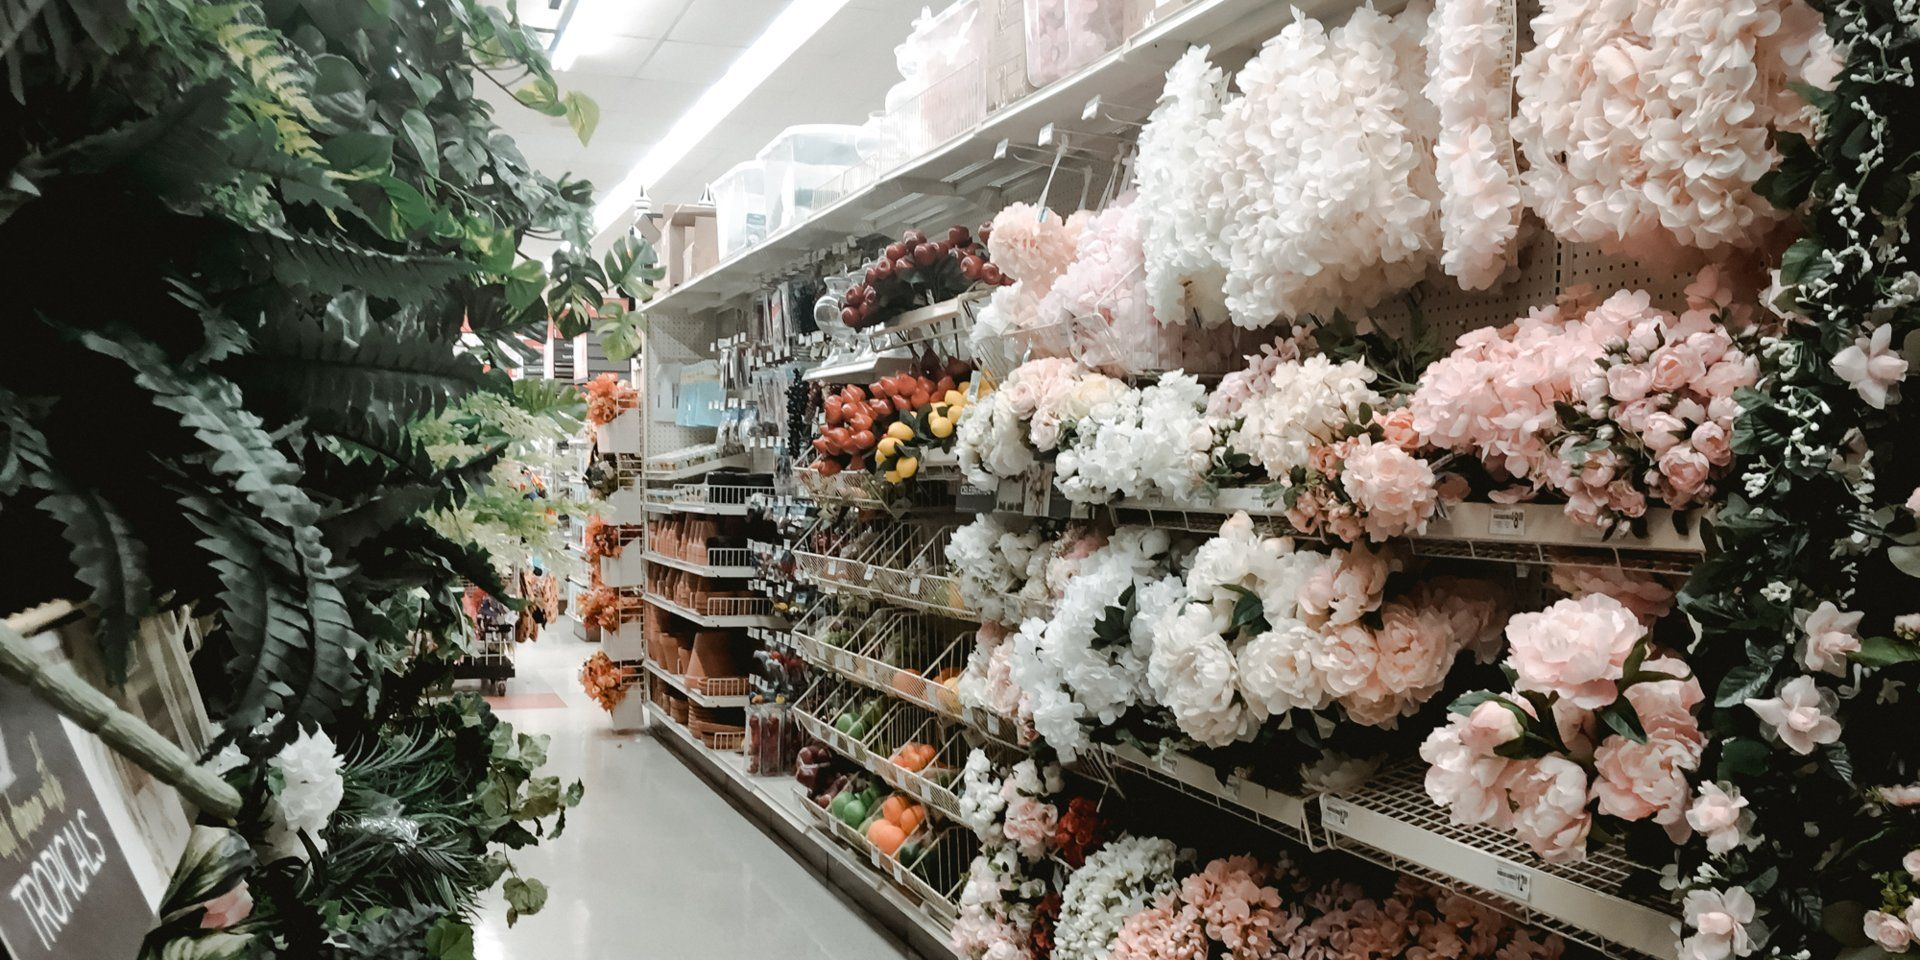 We visited Hobby Lobby and Michaels to see which was a